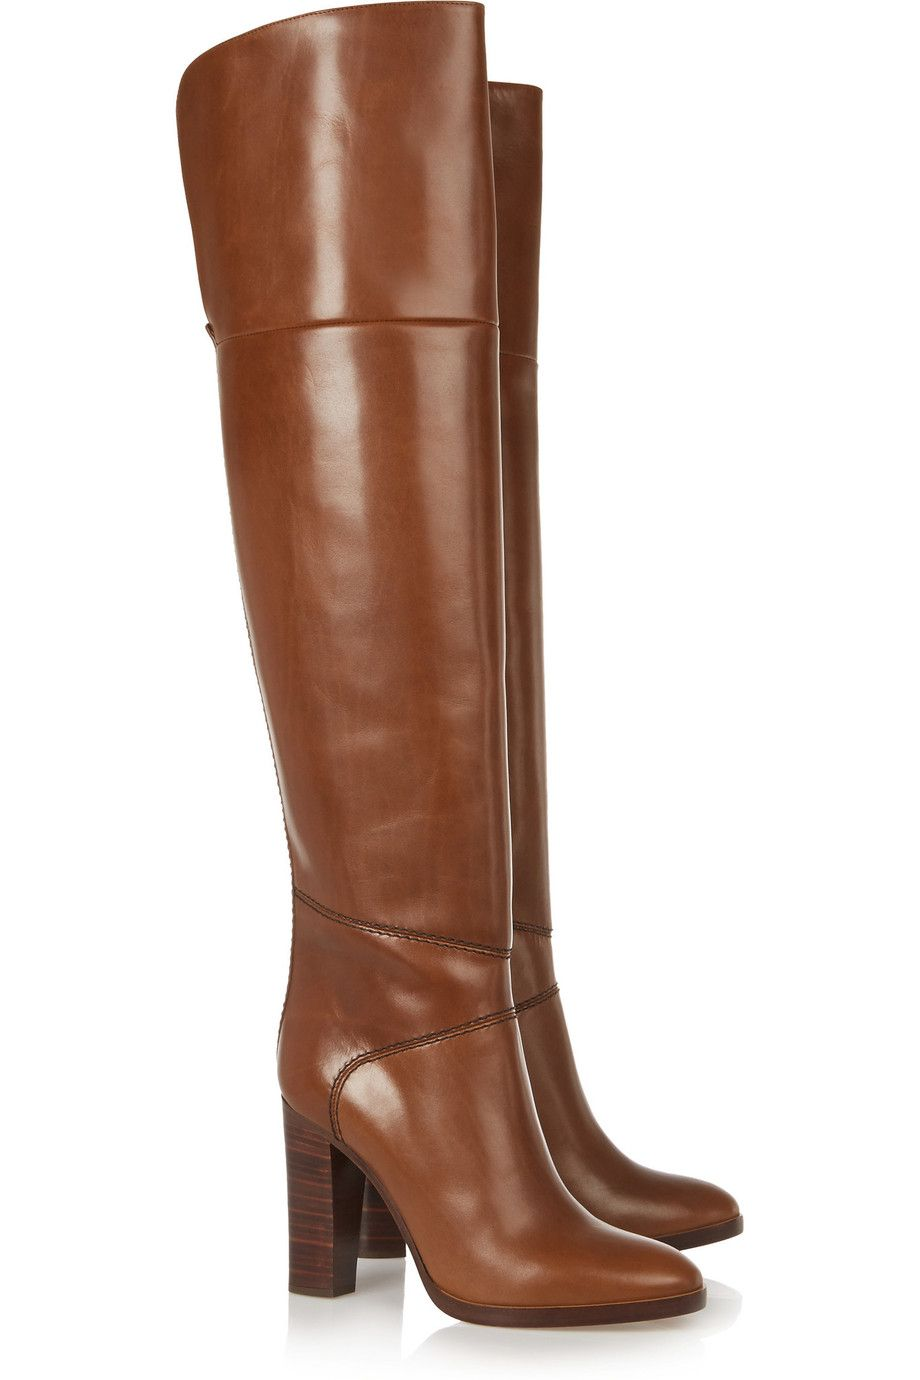 Chloé Glossed-leather over-the-knee boots.